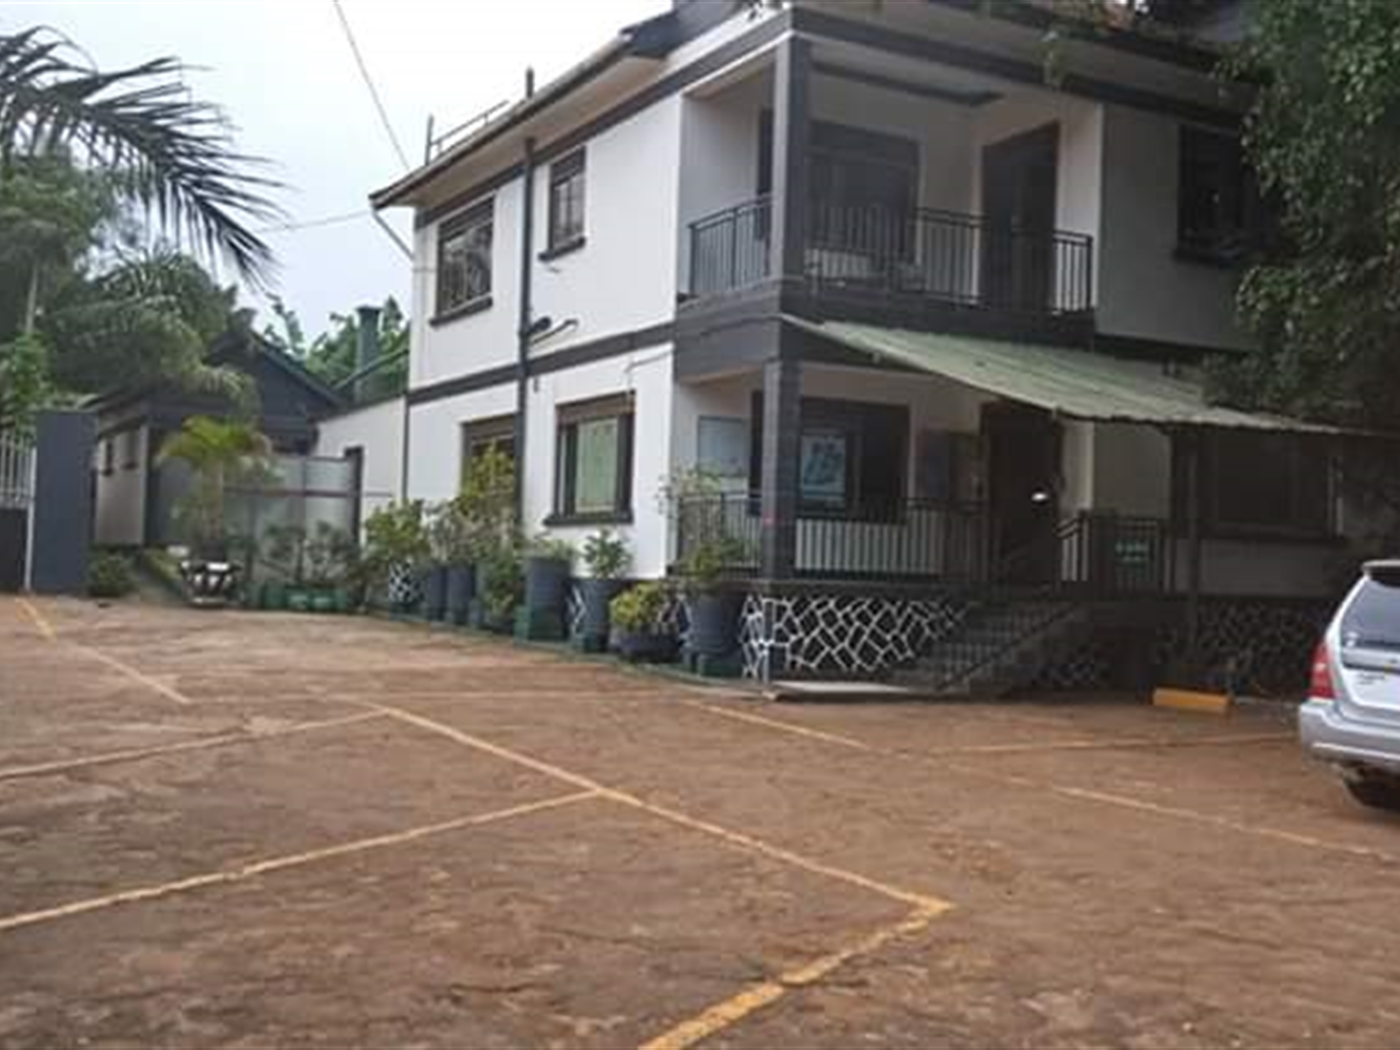 20 Bedroom Mansion For Sale In Ntinda Kampala Uganda Code 54863 29 03 2021